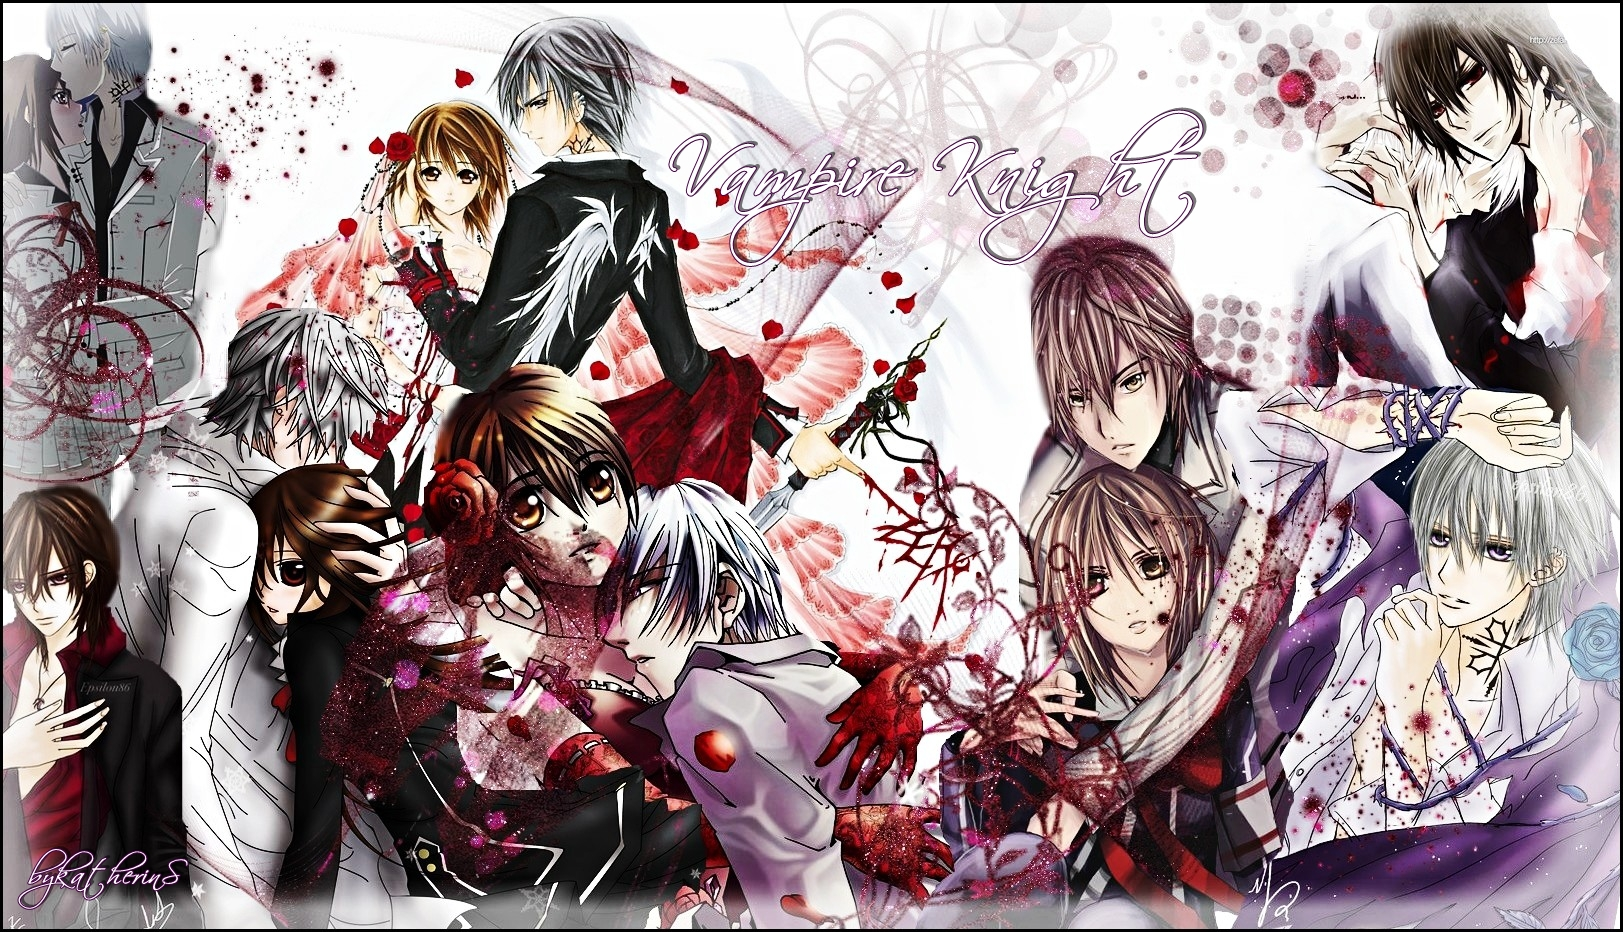 Vampire knight wallpaper by katherins on deviantart - Vampire knight anime wallpaper ...